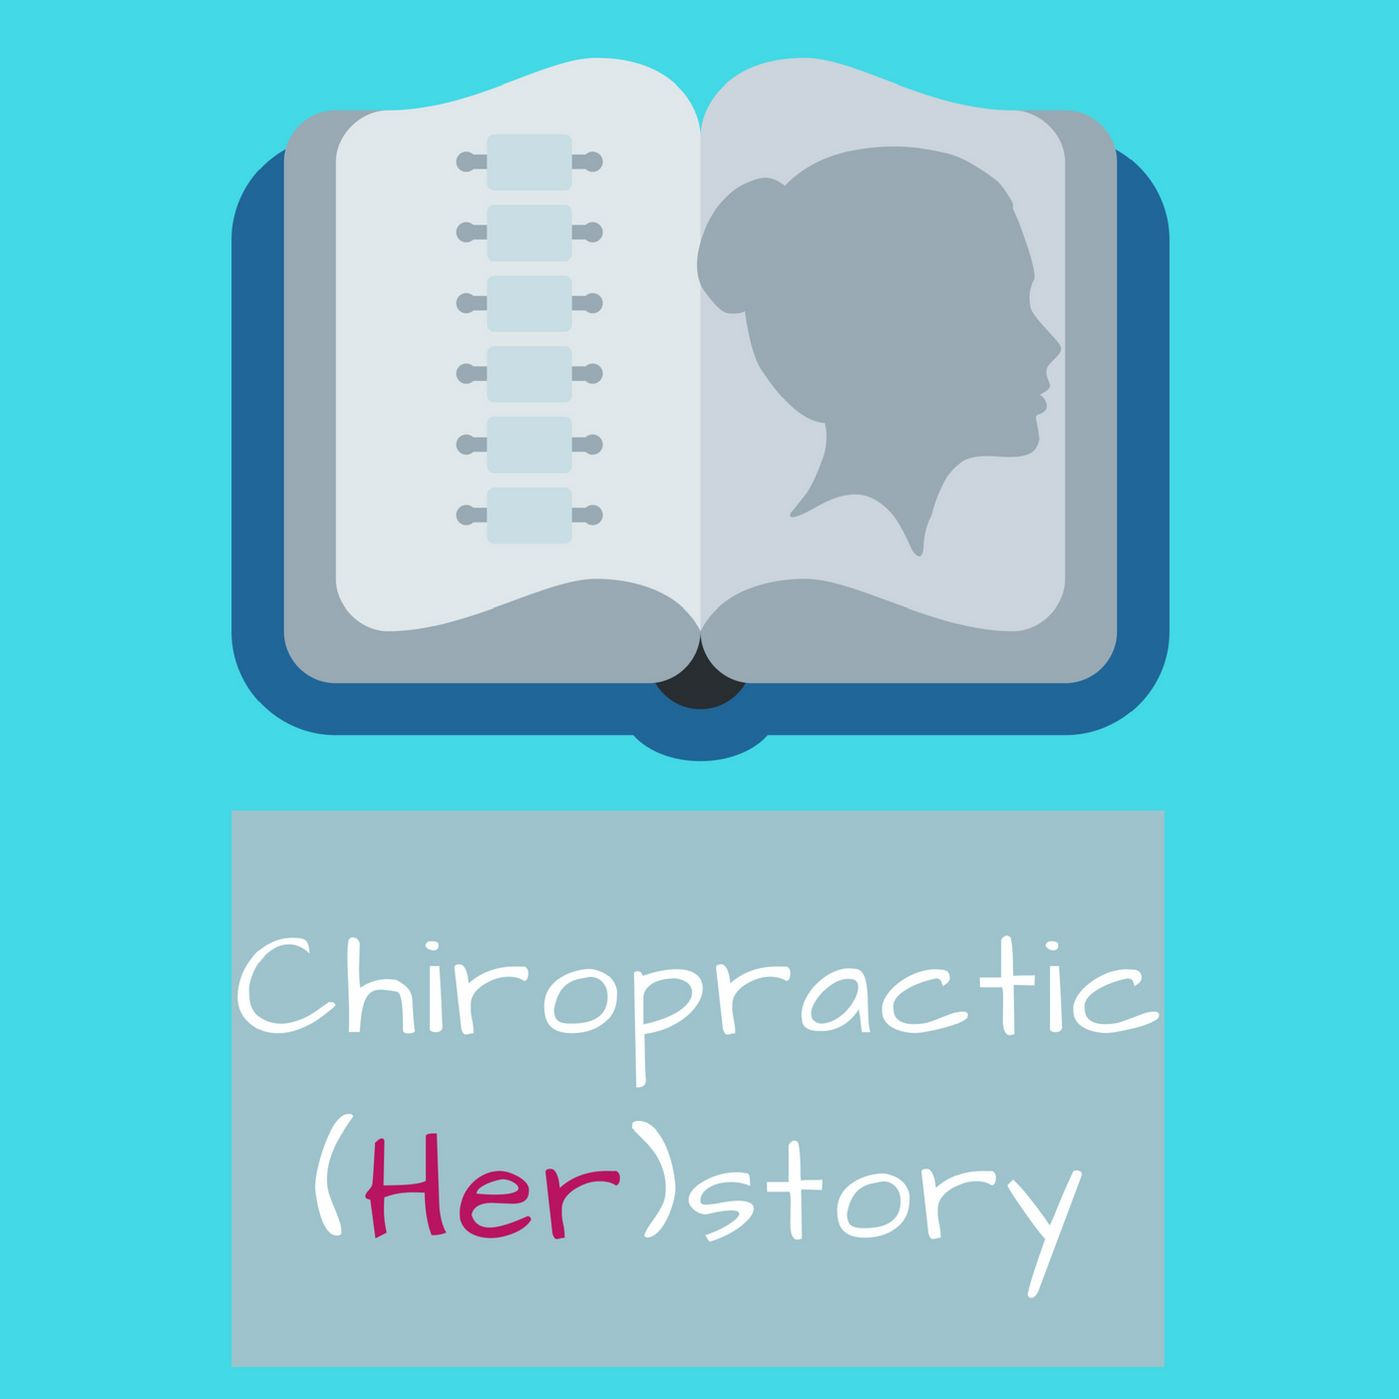 Dr. Amy Crowe- Chiropractic (Her)story Episode 57